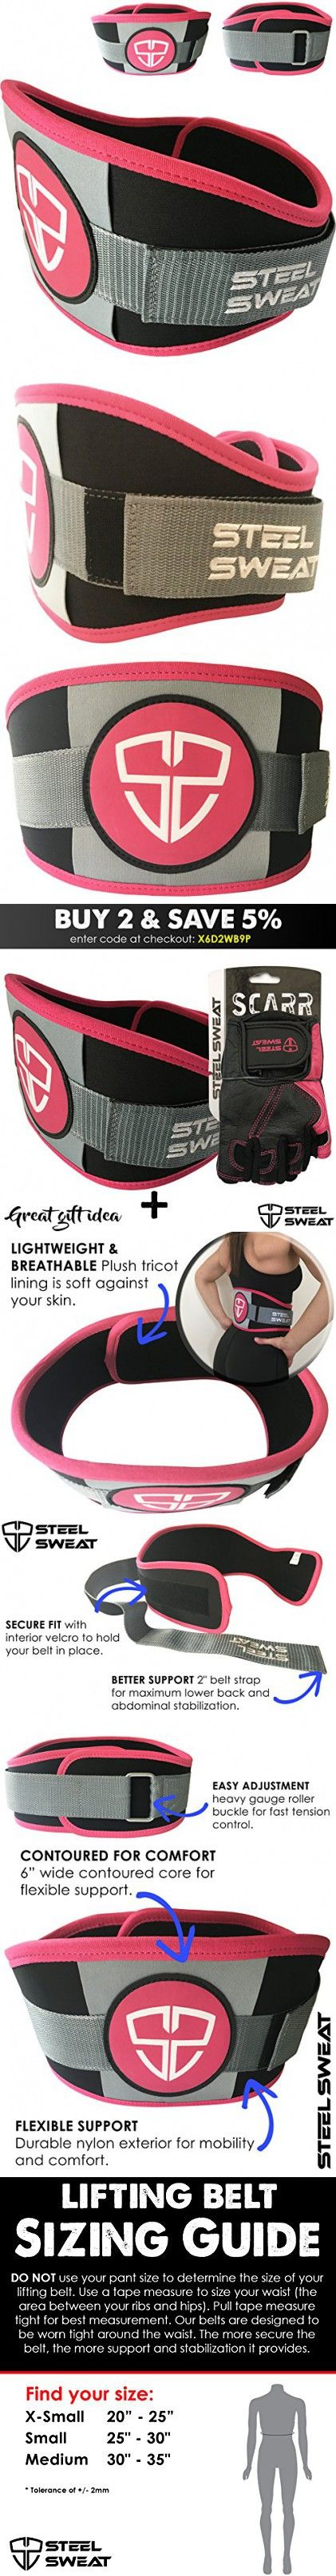 Weight Lifting Belt by Steel Sweat for Women - 6 inch Flexible Lightweight Contoured Belt - Best for Gym, Exercise, Workout, Training, Weightlifting Columba